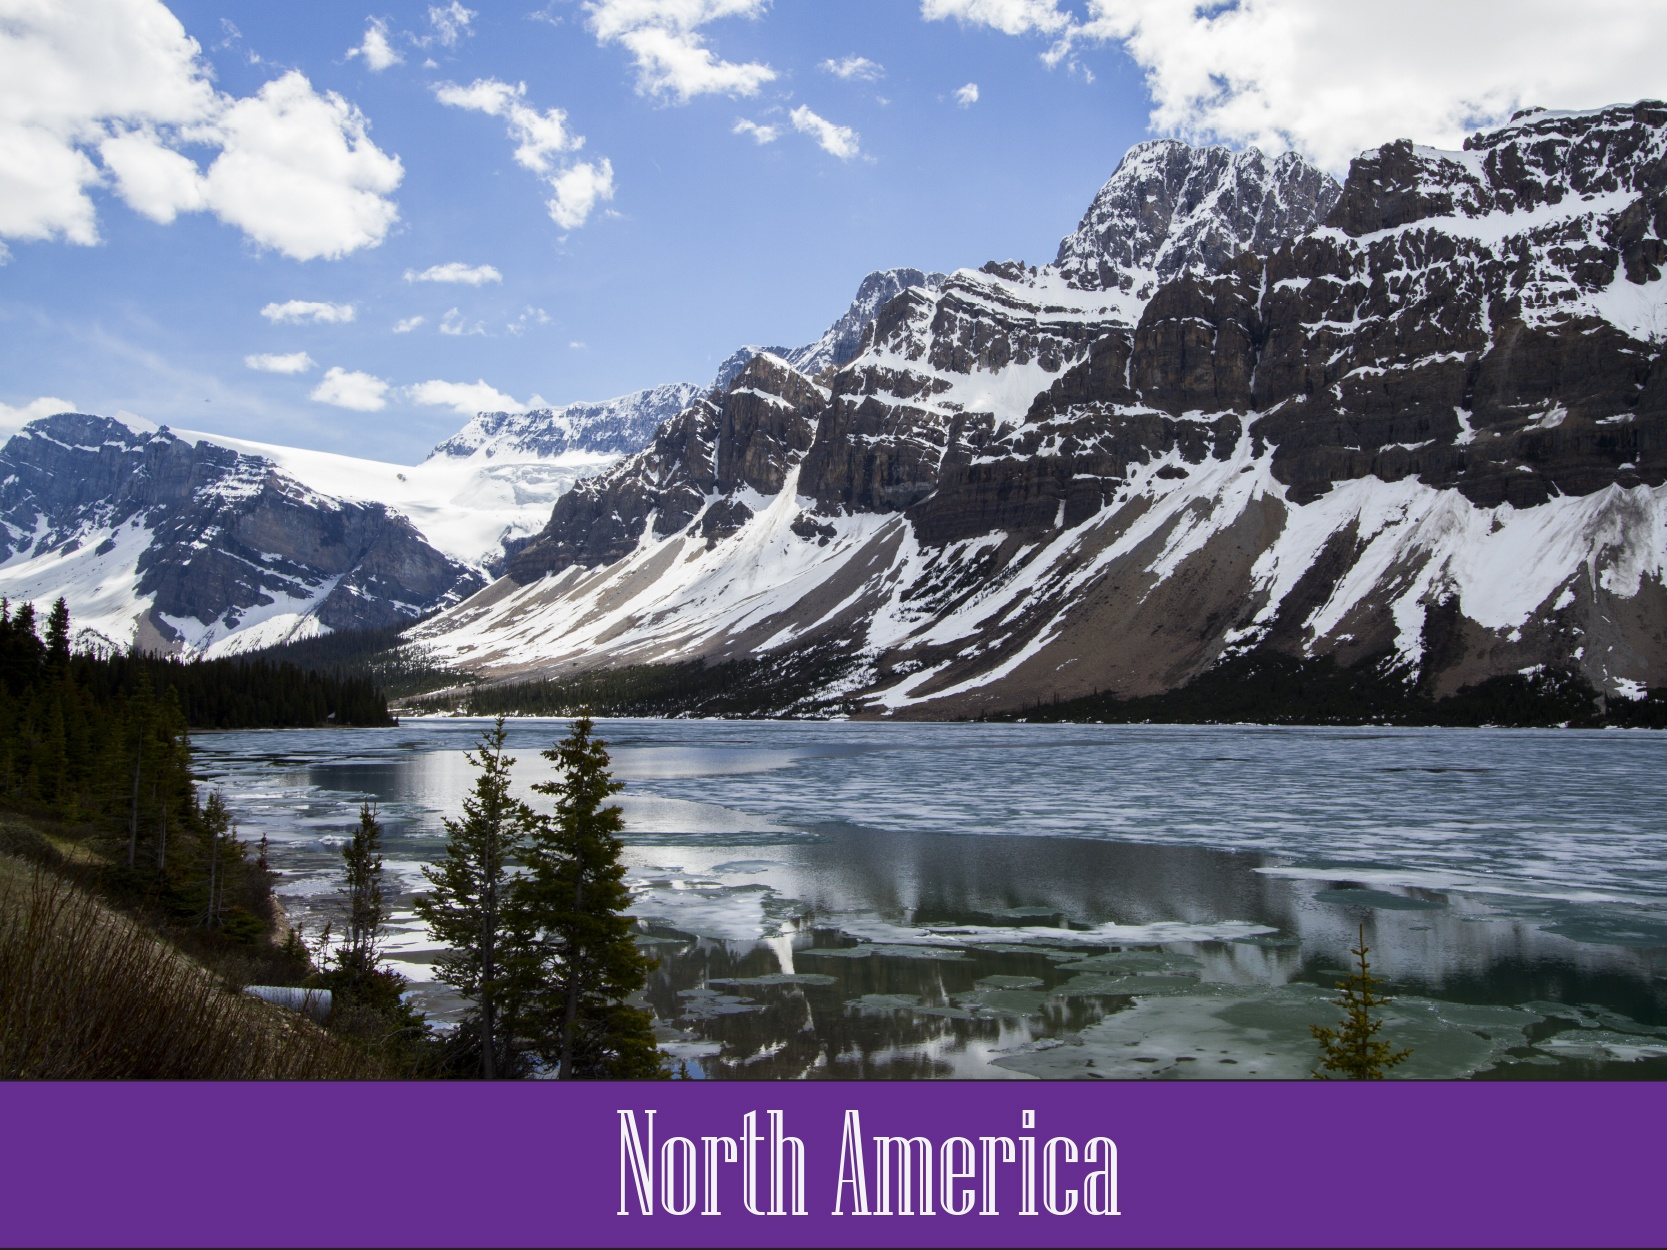 Places to visit in North America